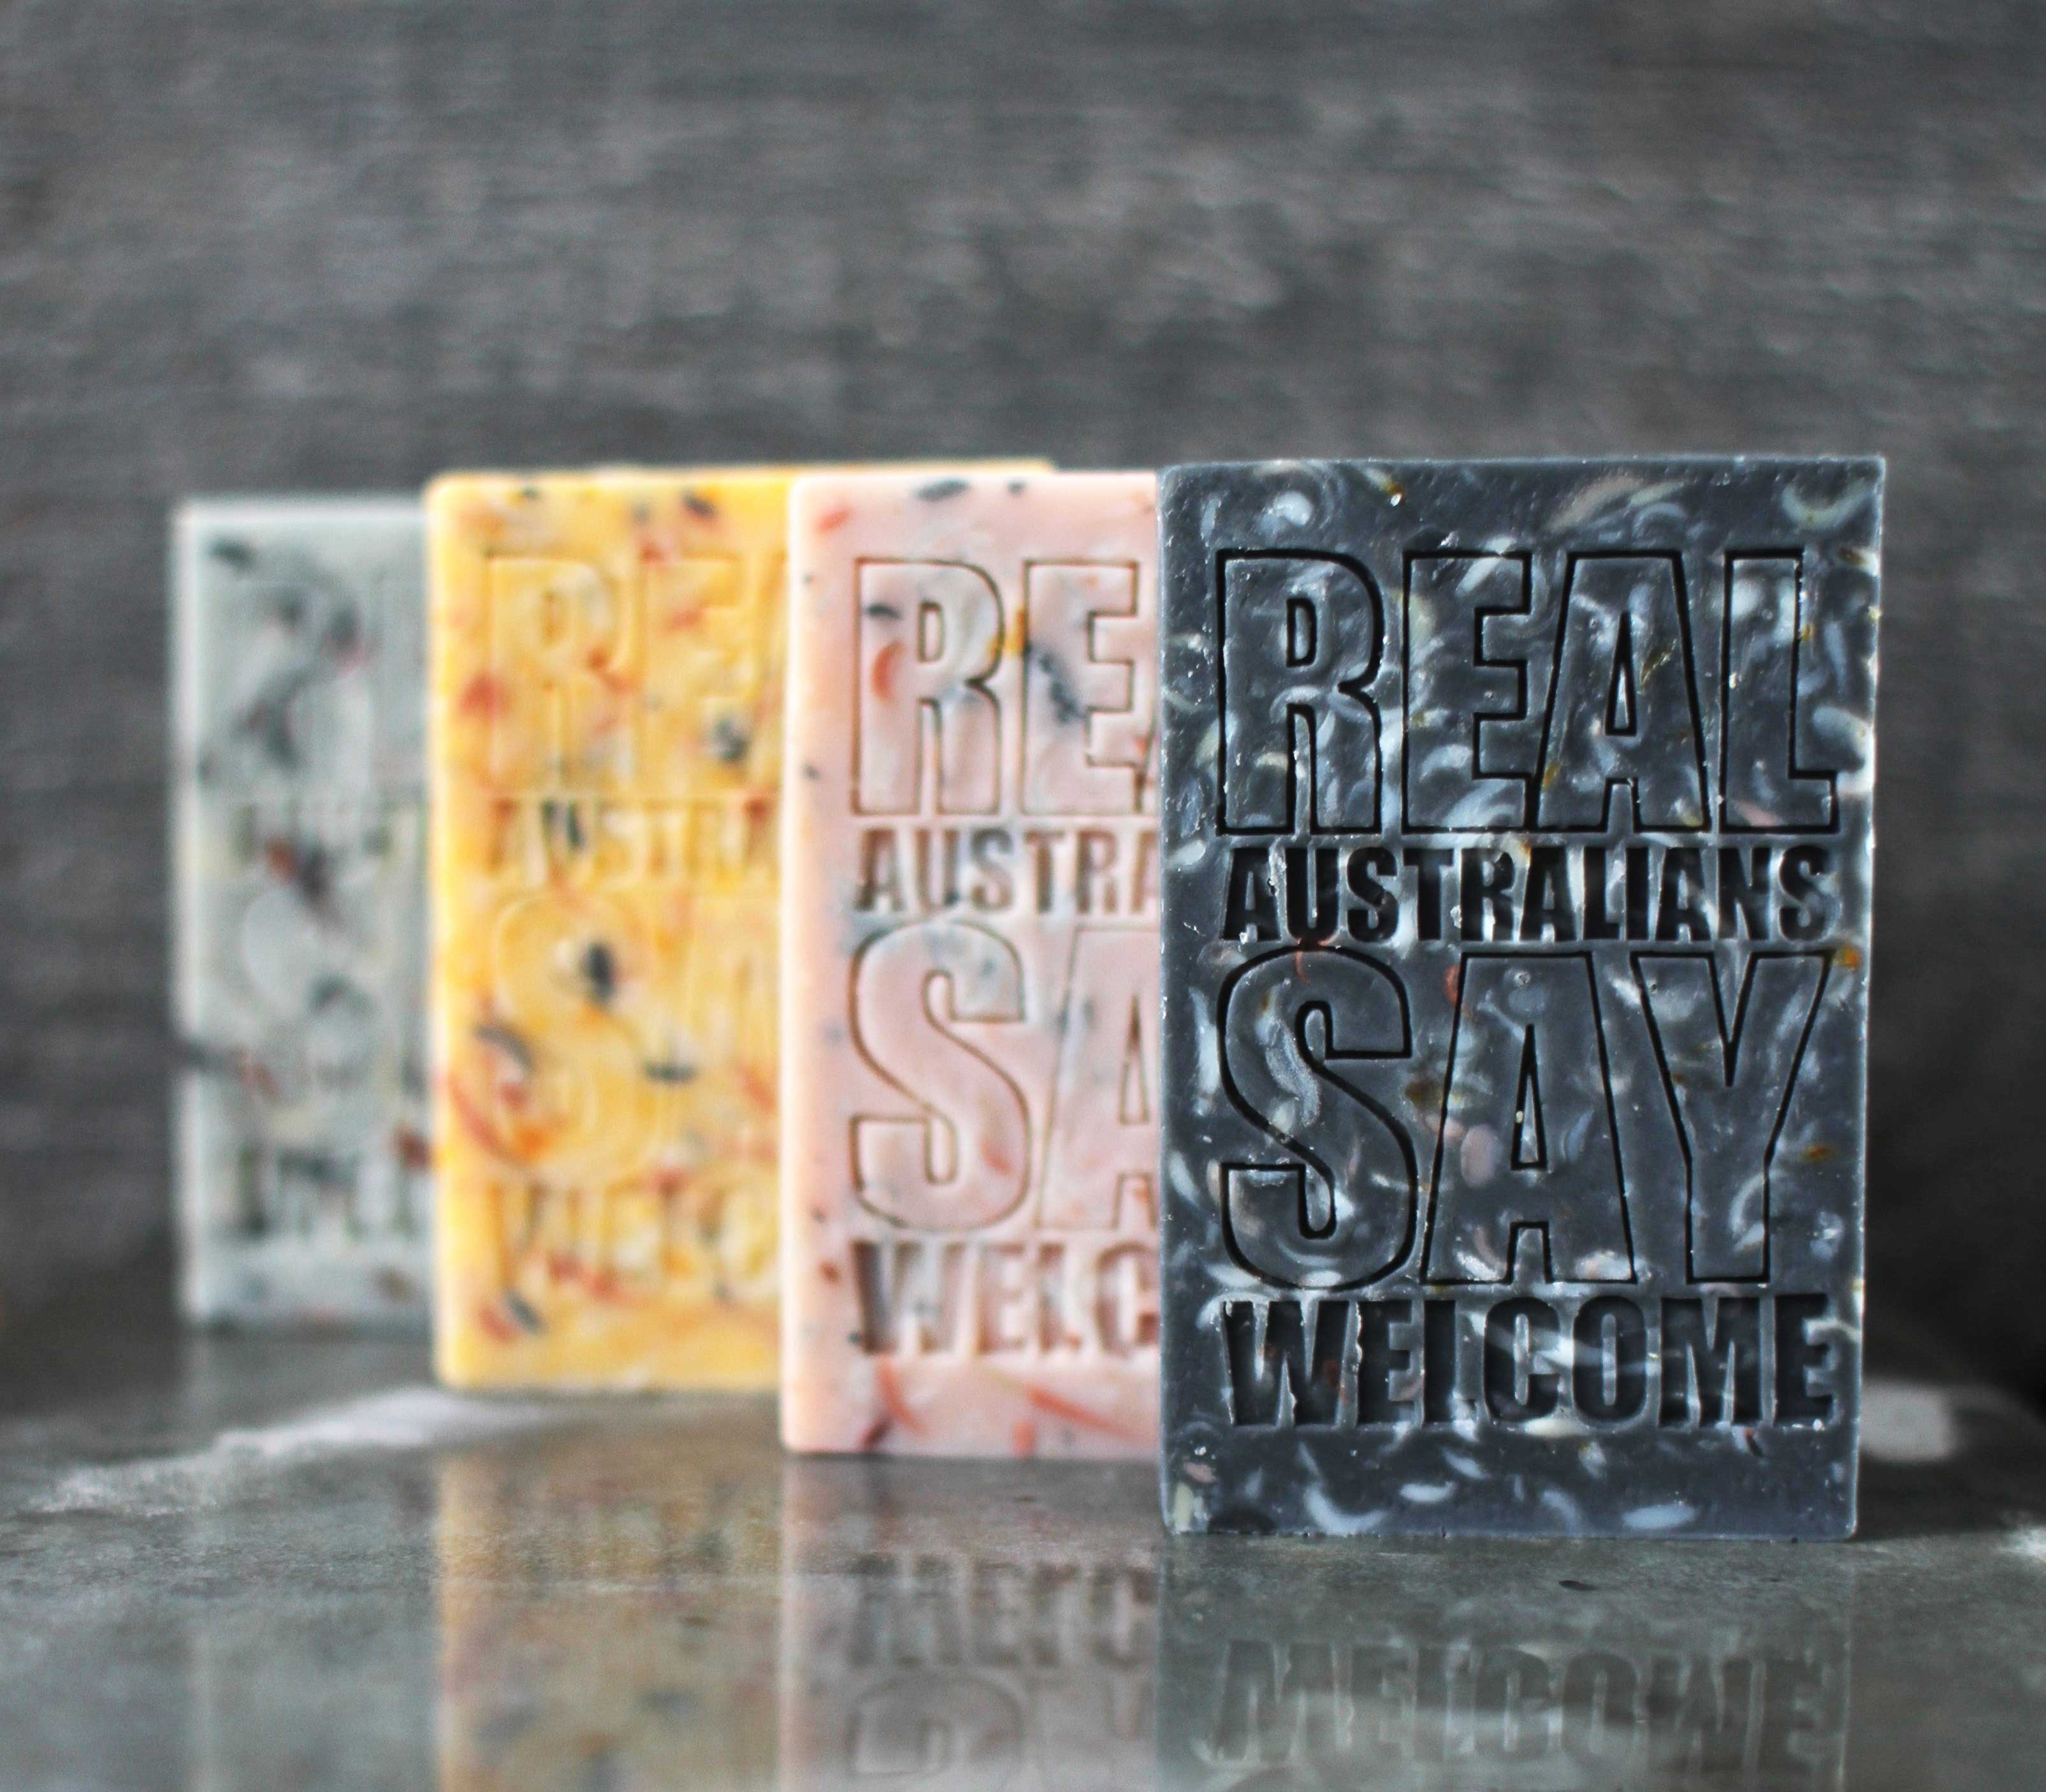 Real Australians Say Welcome soap